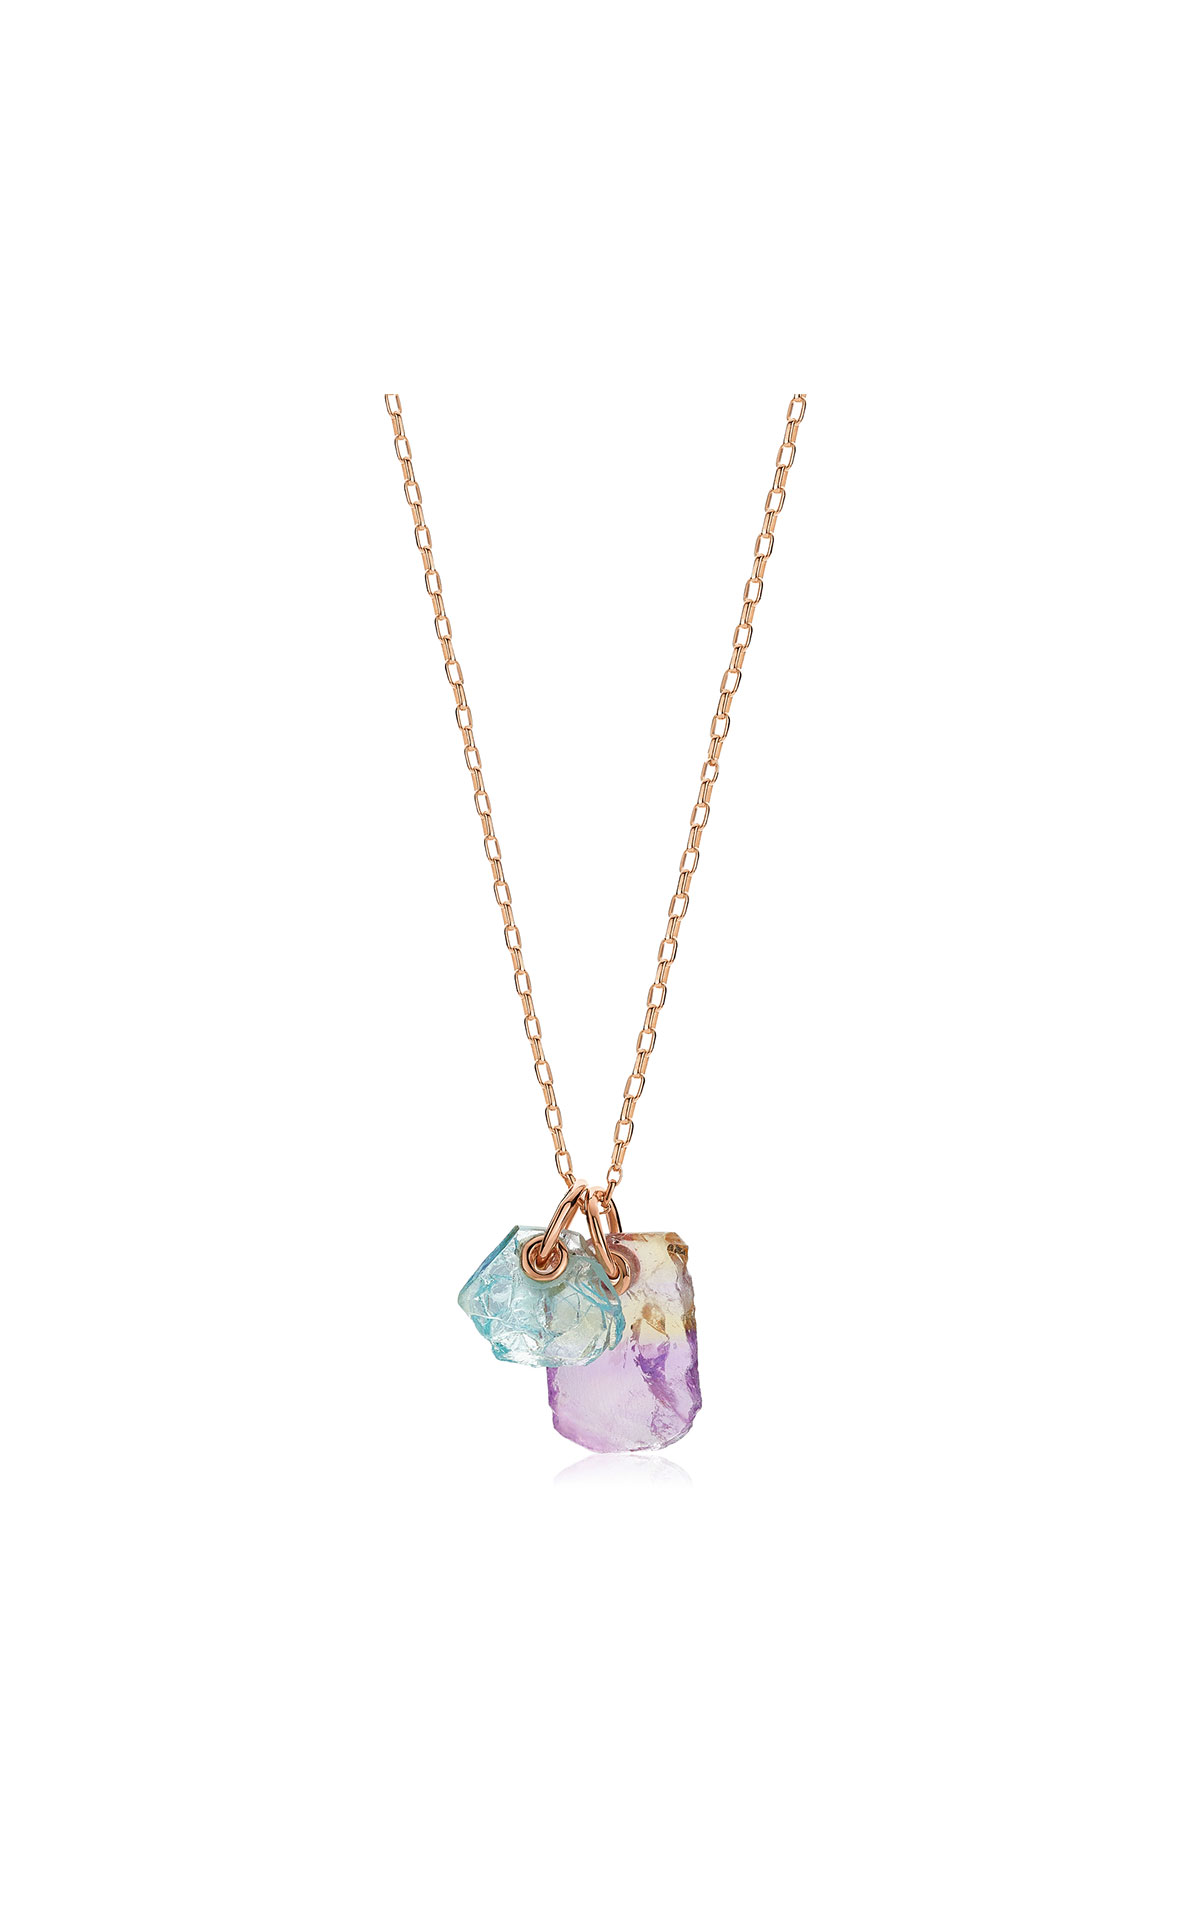 Monica Vinader Rose gold vermeil gemstone double pendant adjustable necklace from Bicester Village